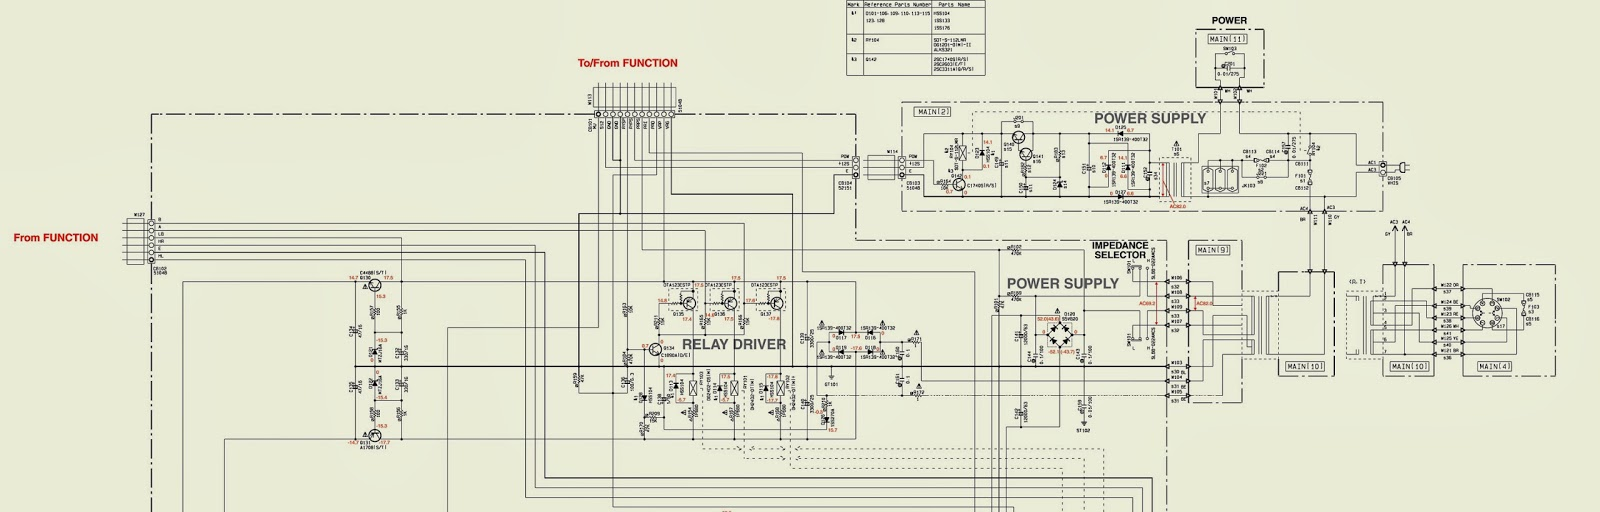 Yamaha Ax 596 Power Amp Schematic Circuit Diagram Stereo Honda 1 Wiring Amplifier